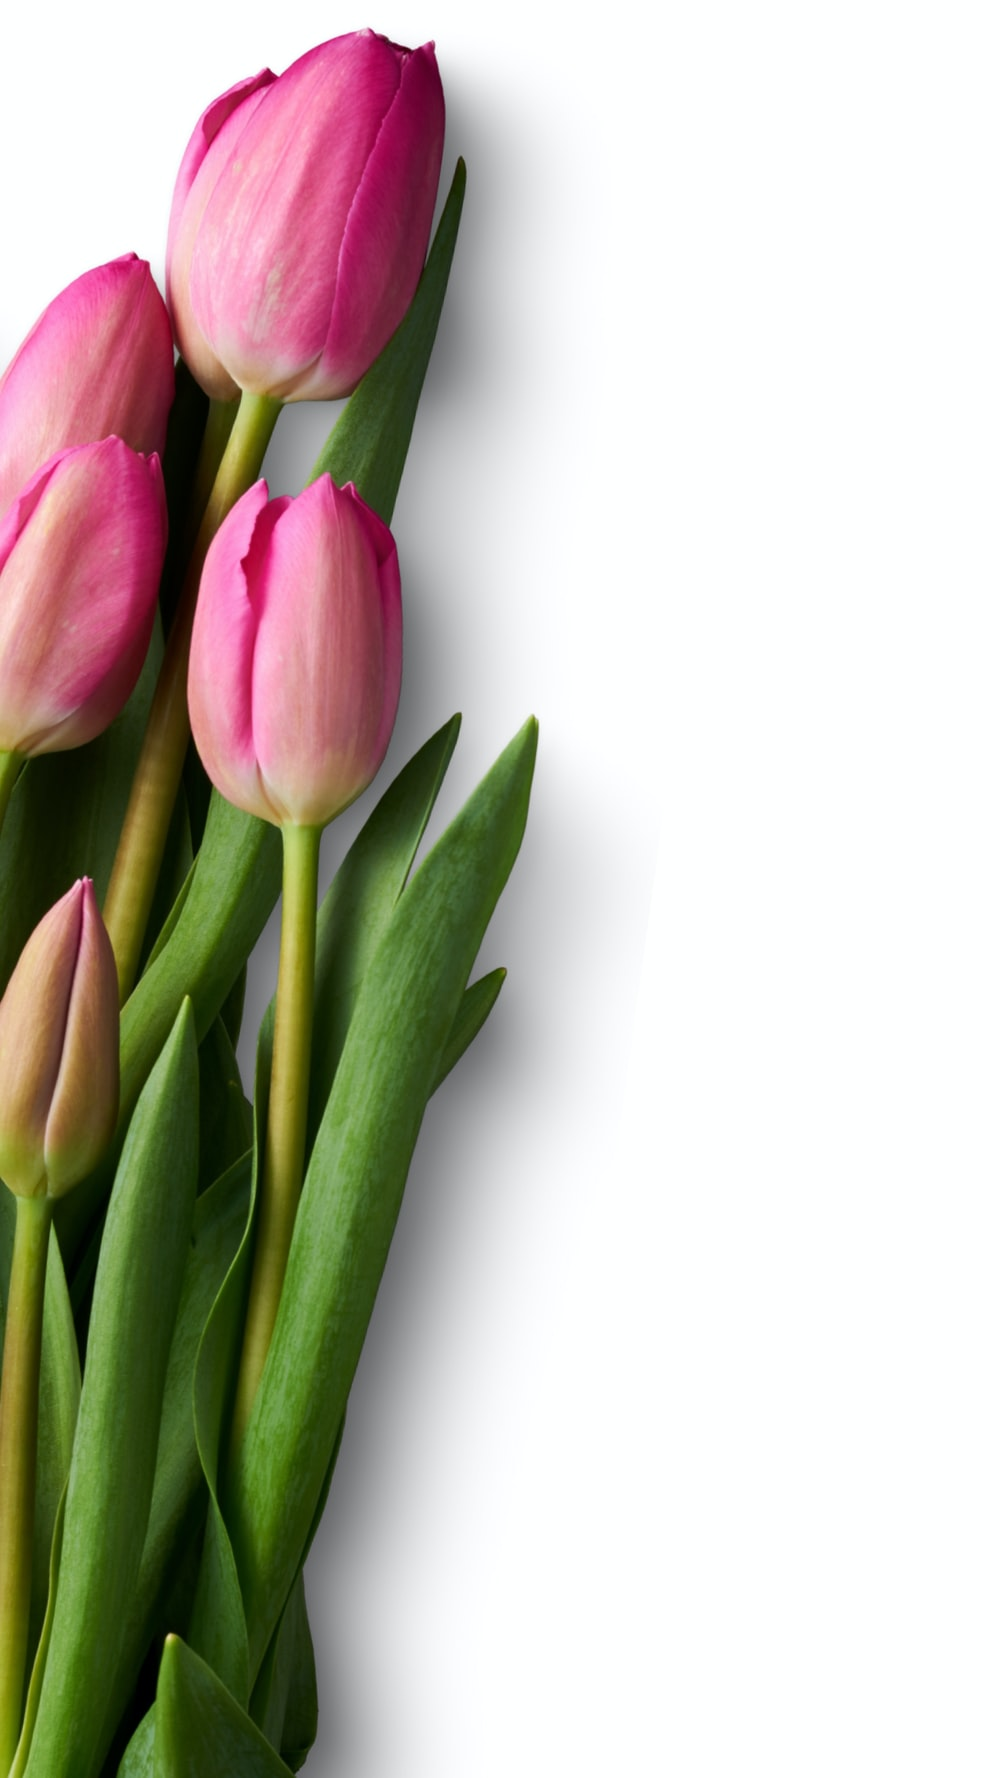 pink tulips on white surface